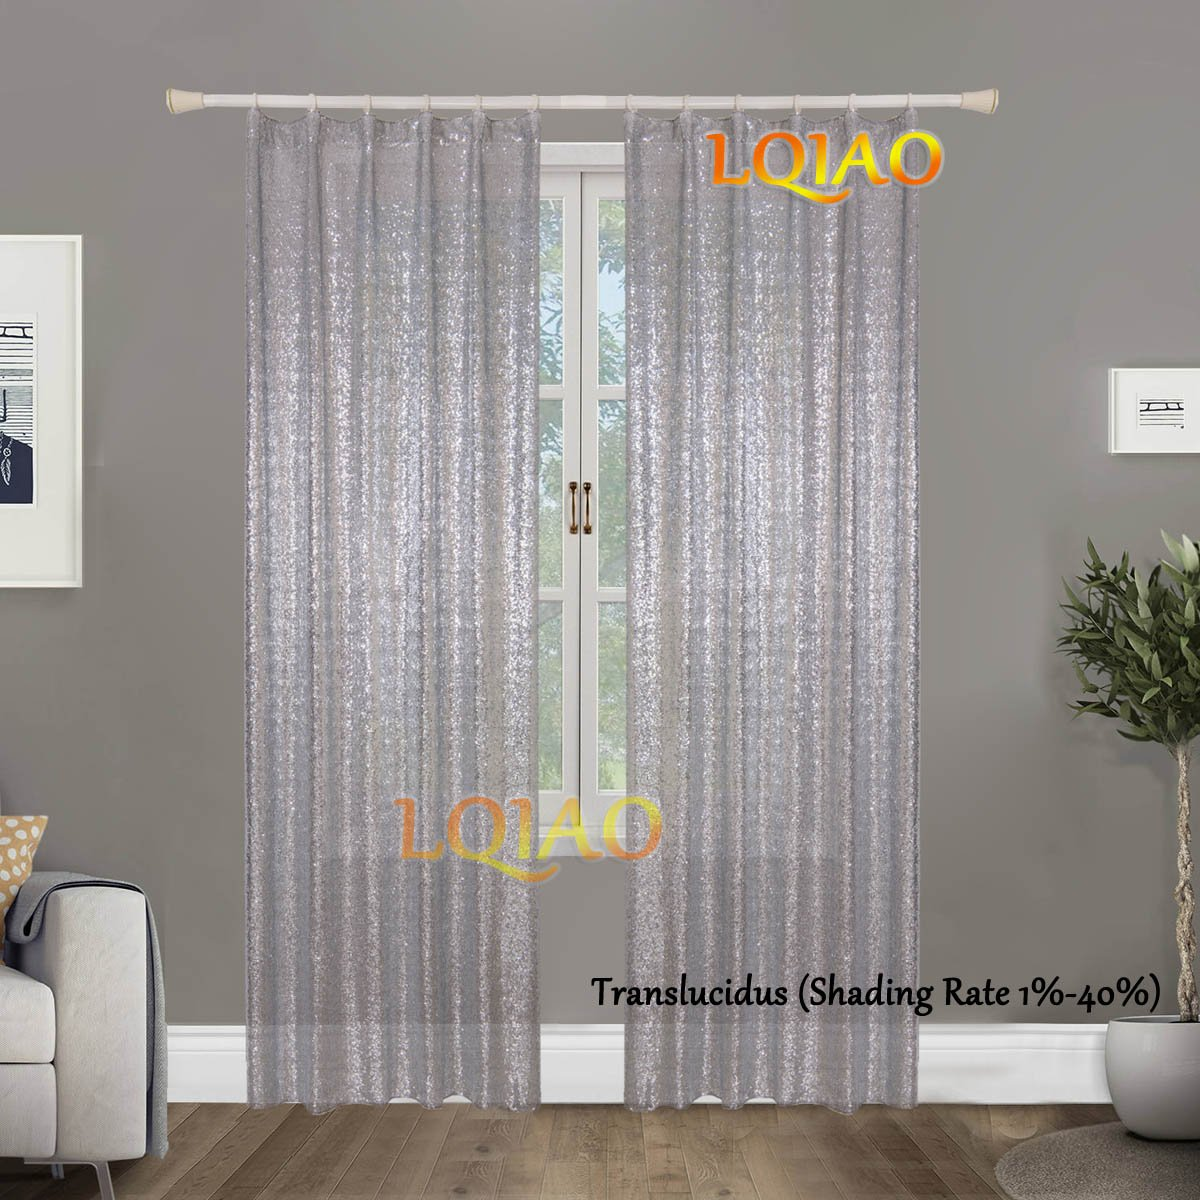 LQIAO Luxurious Metalic Silver Sequin Curtains 50x95in Sparkly Silver Fabric Window Curtain Panel,little see through, 50x95 inches,More Colors Options Hooks Possible